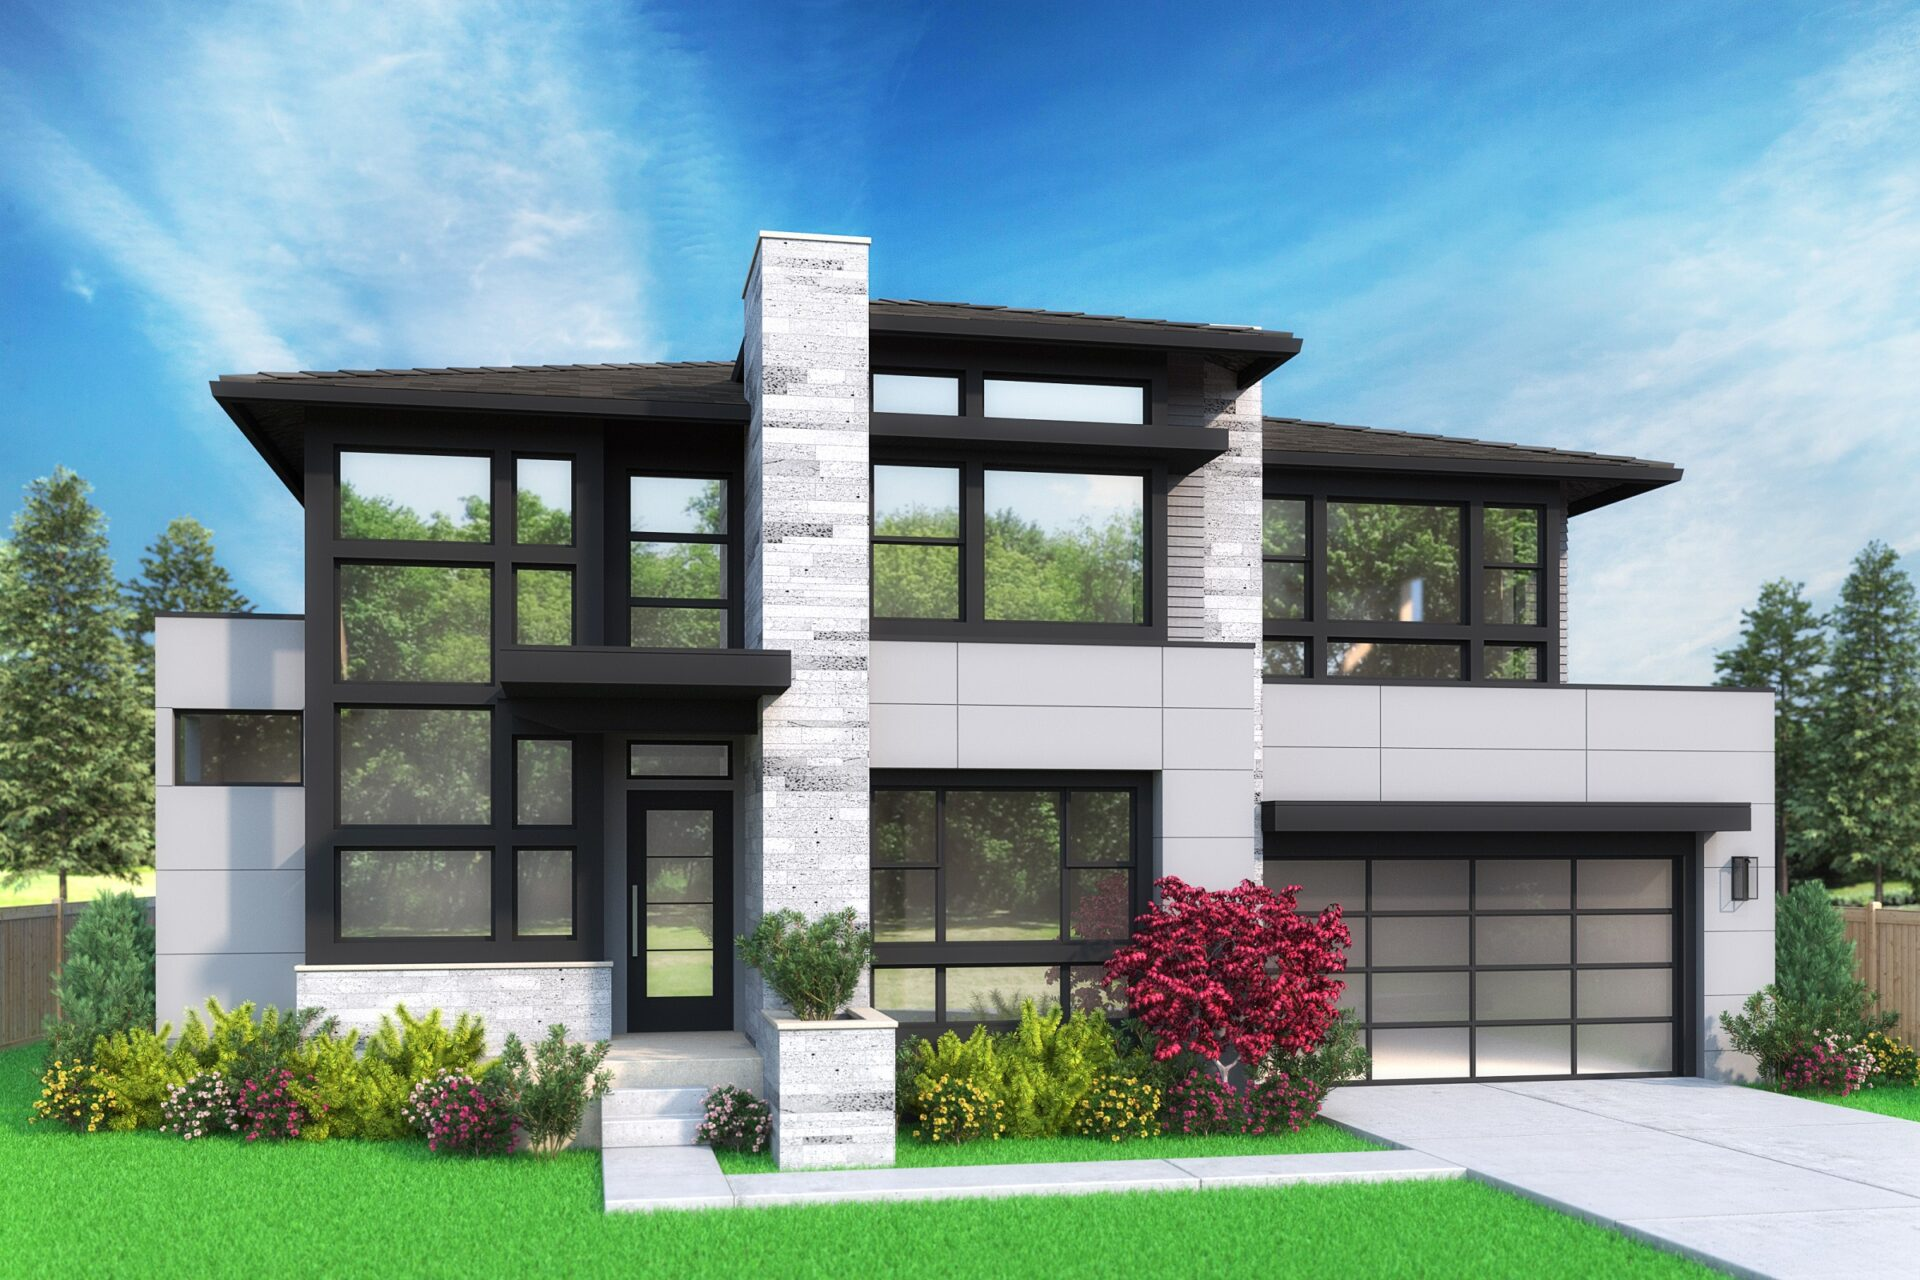 View our new luxury home construction on 451 110th Ave SE, in Bellevue, WA from MN Custom Homes